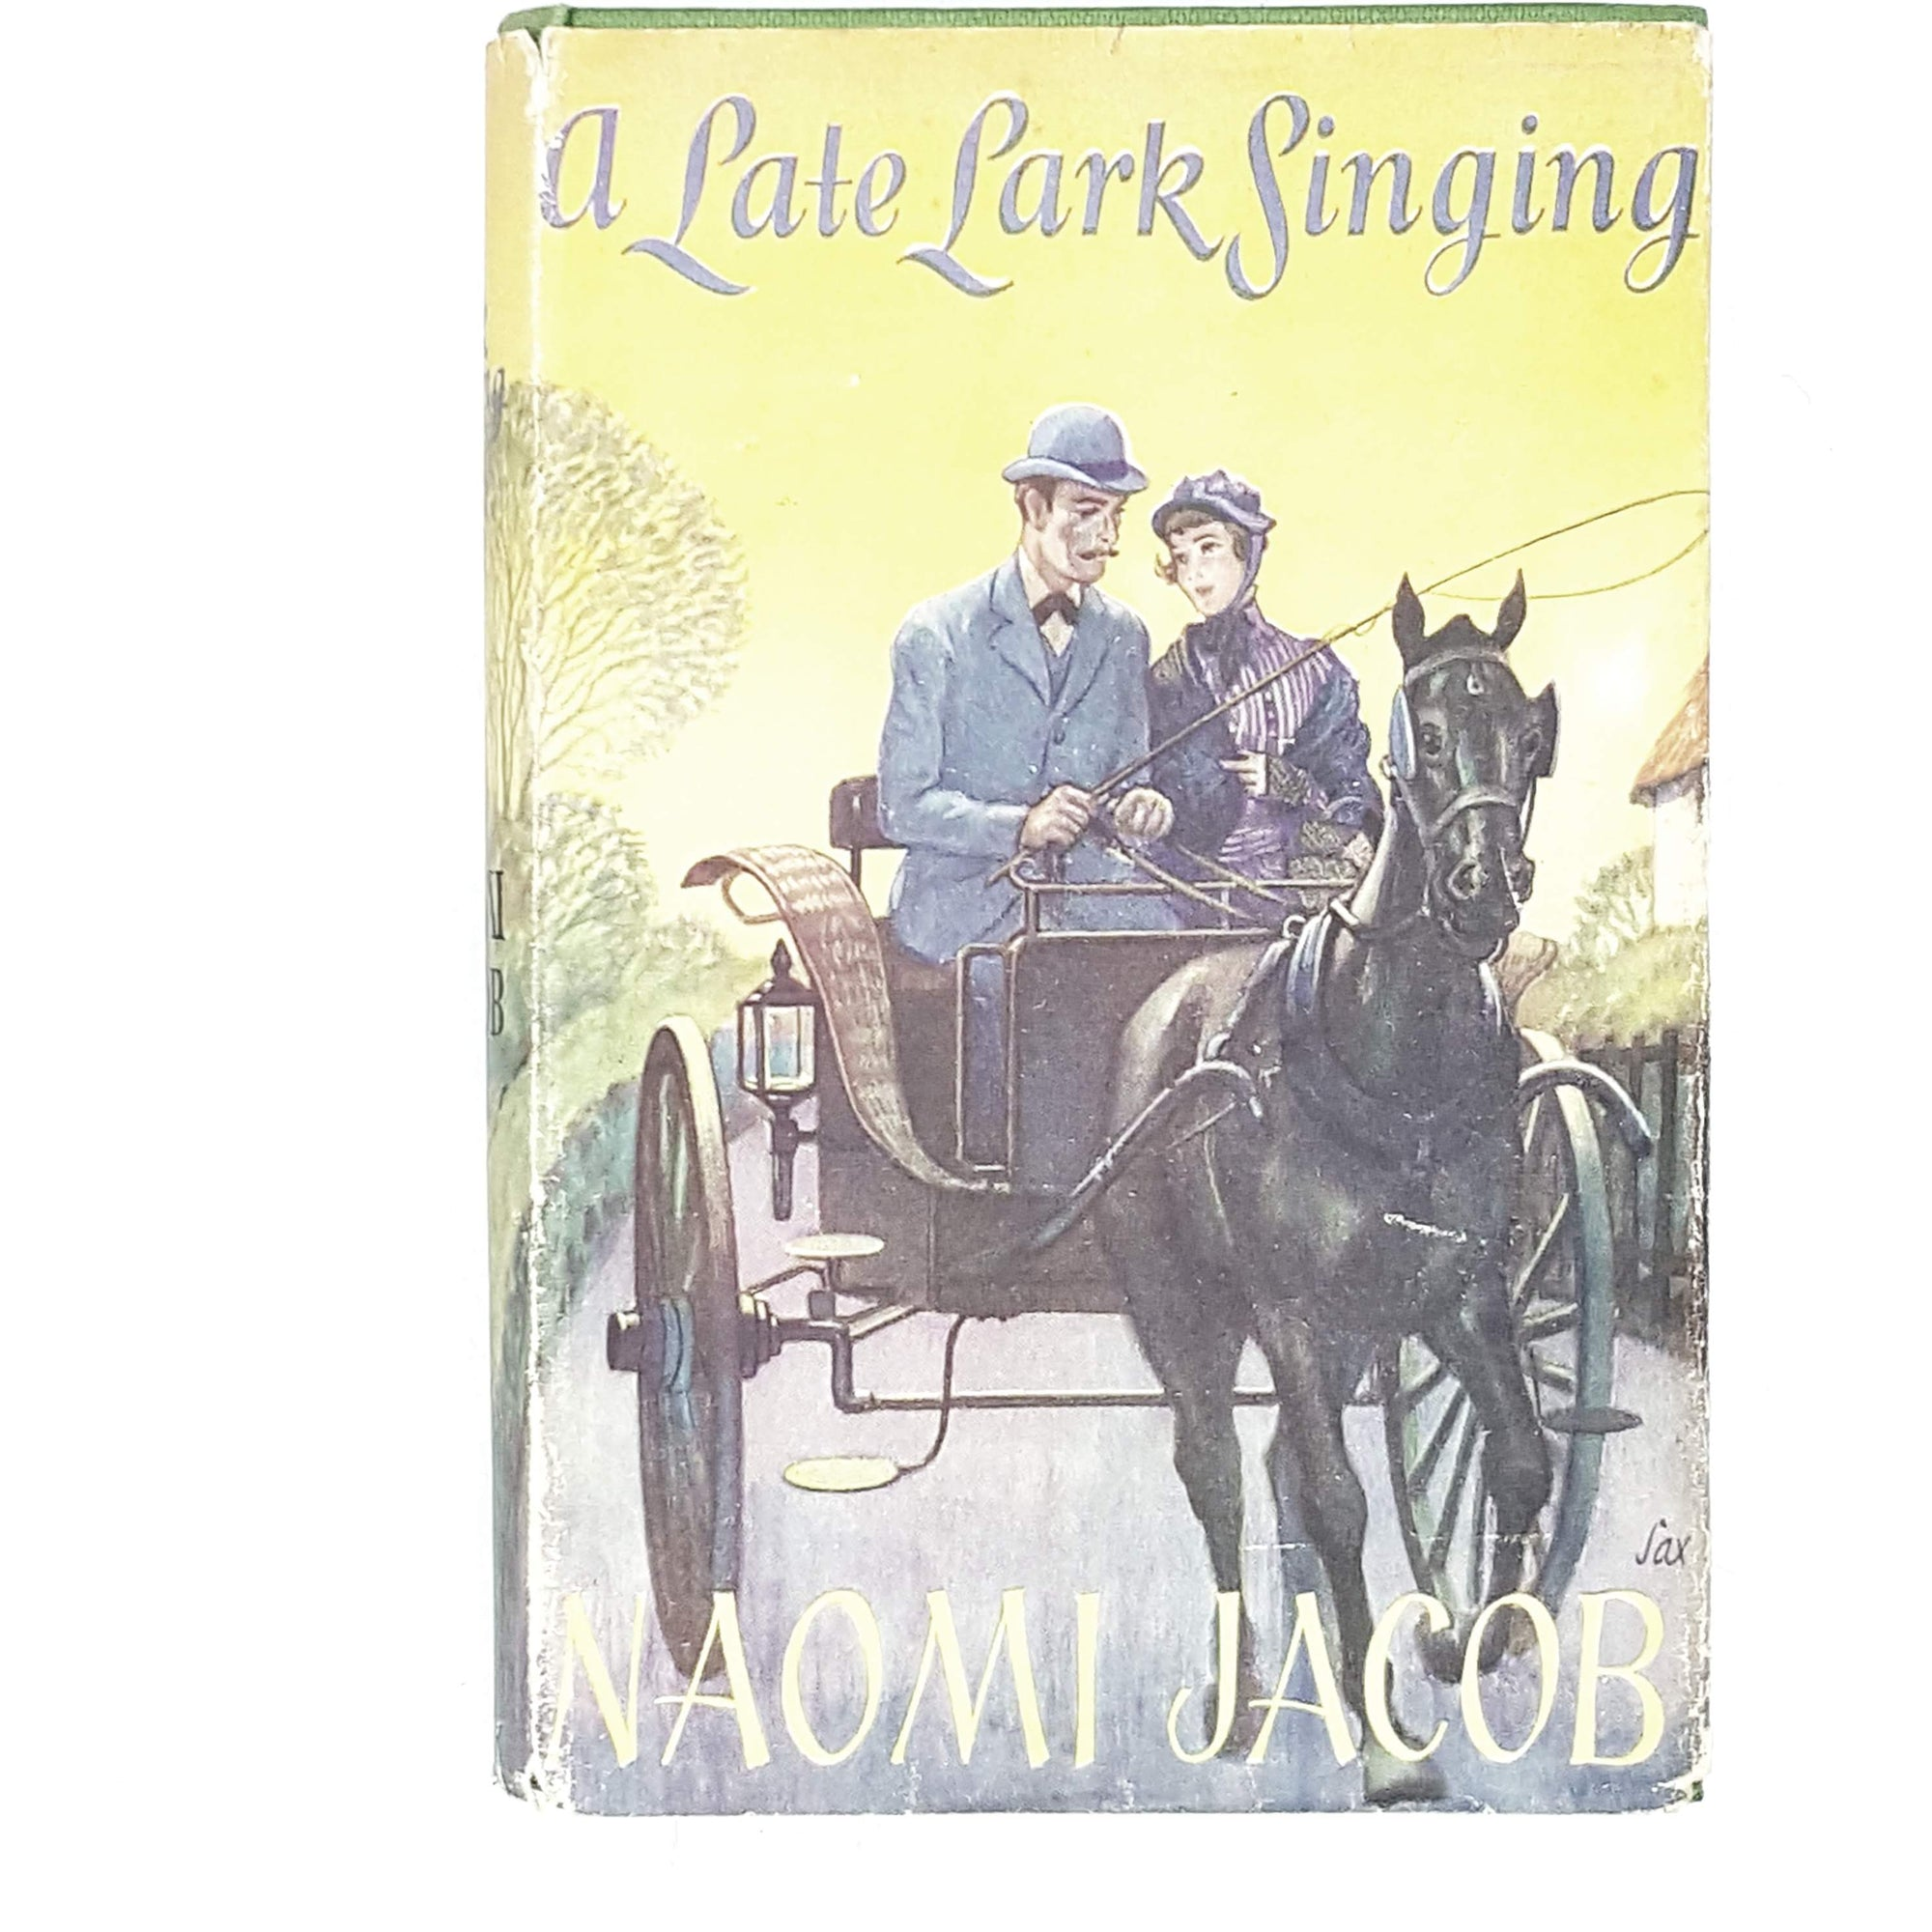 a-late-park-singing-naomi-jacob-country-house-library